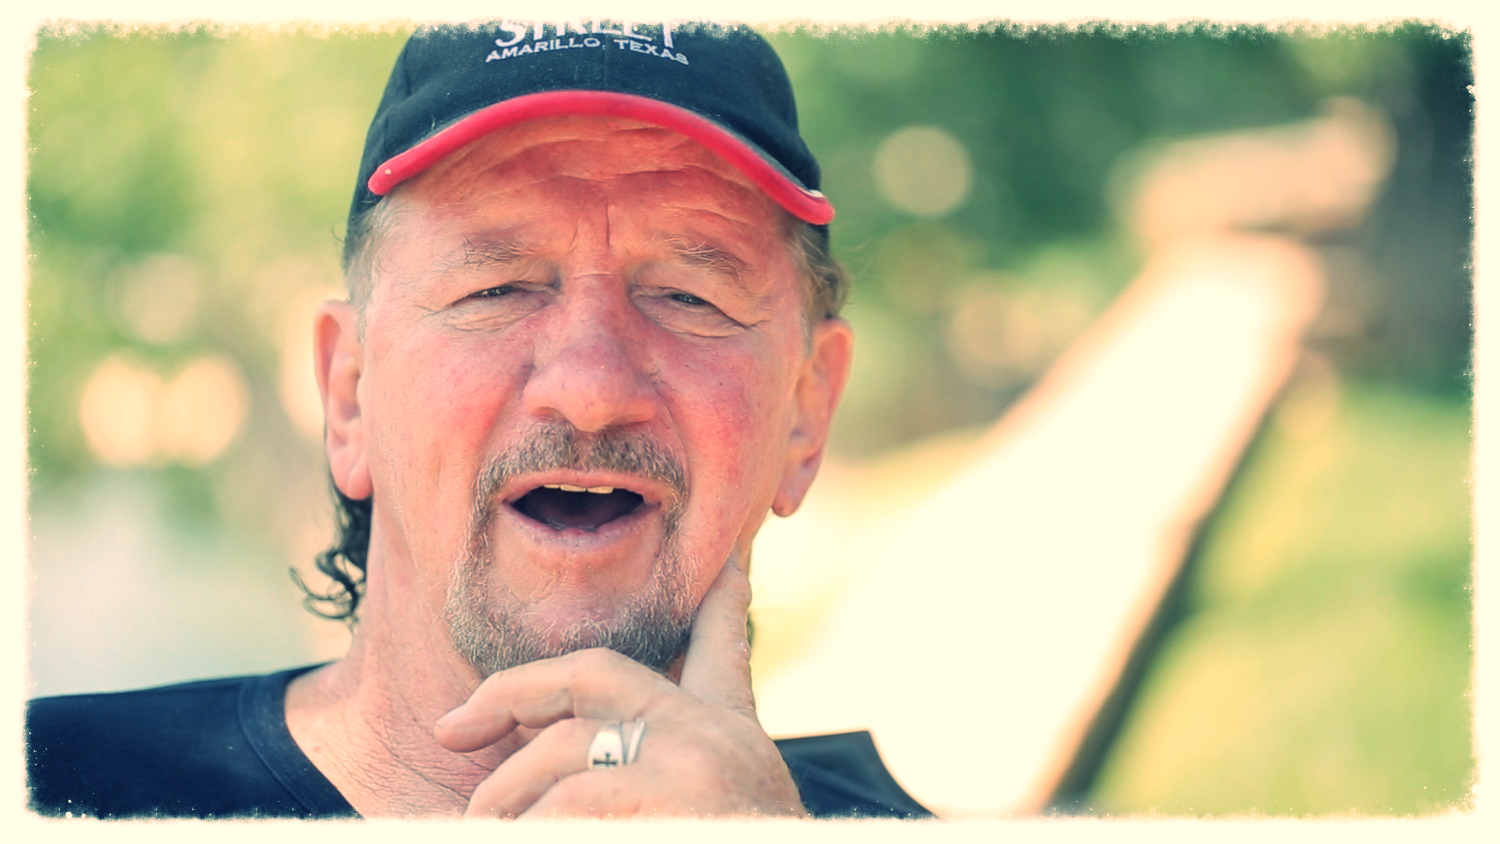 WWE Hall of Fame Wrestler Terry Funk discusses his long history with Ted DiBiase.